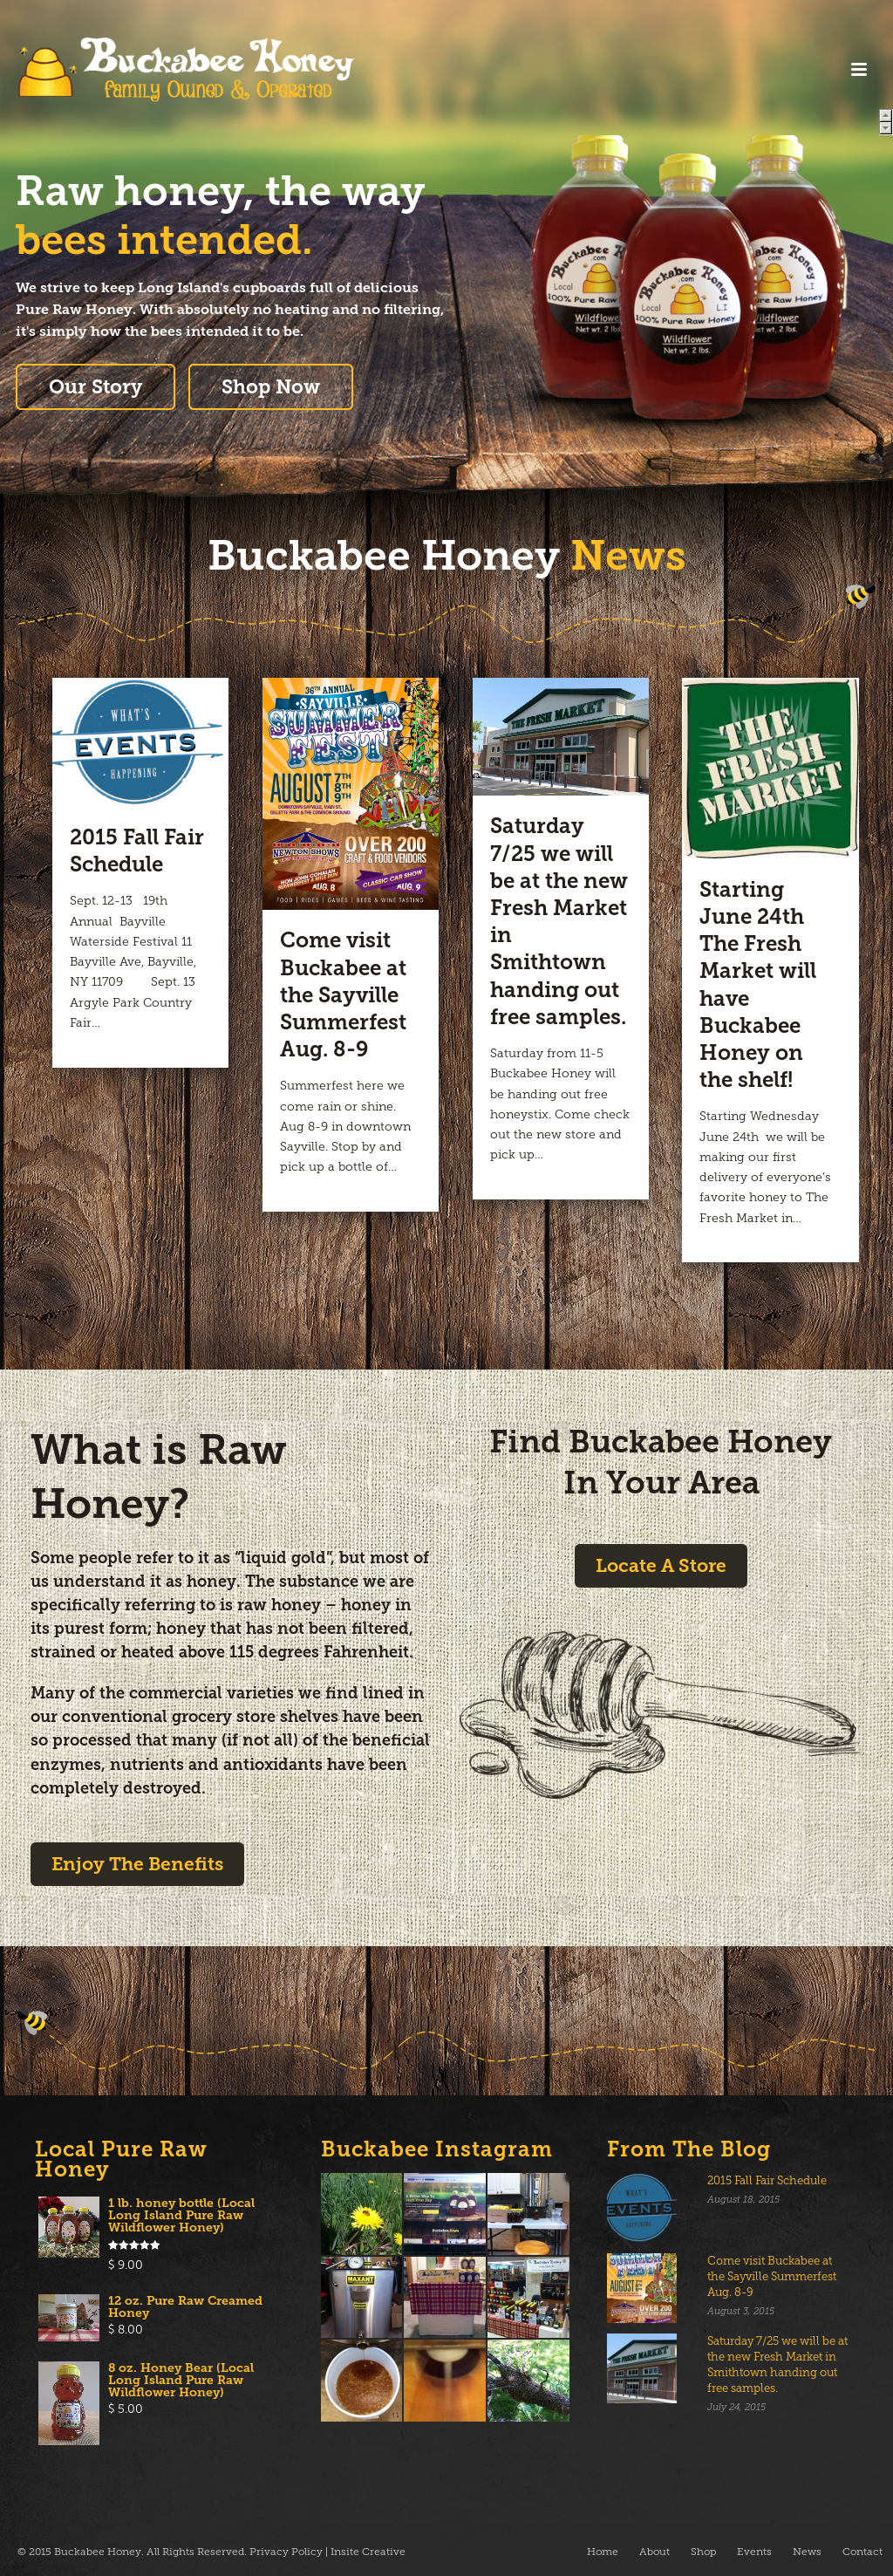 Buckabee Honey Competitors, Revenue and Employees - Owler Company